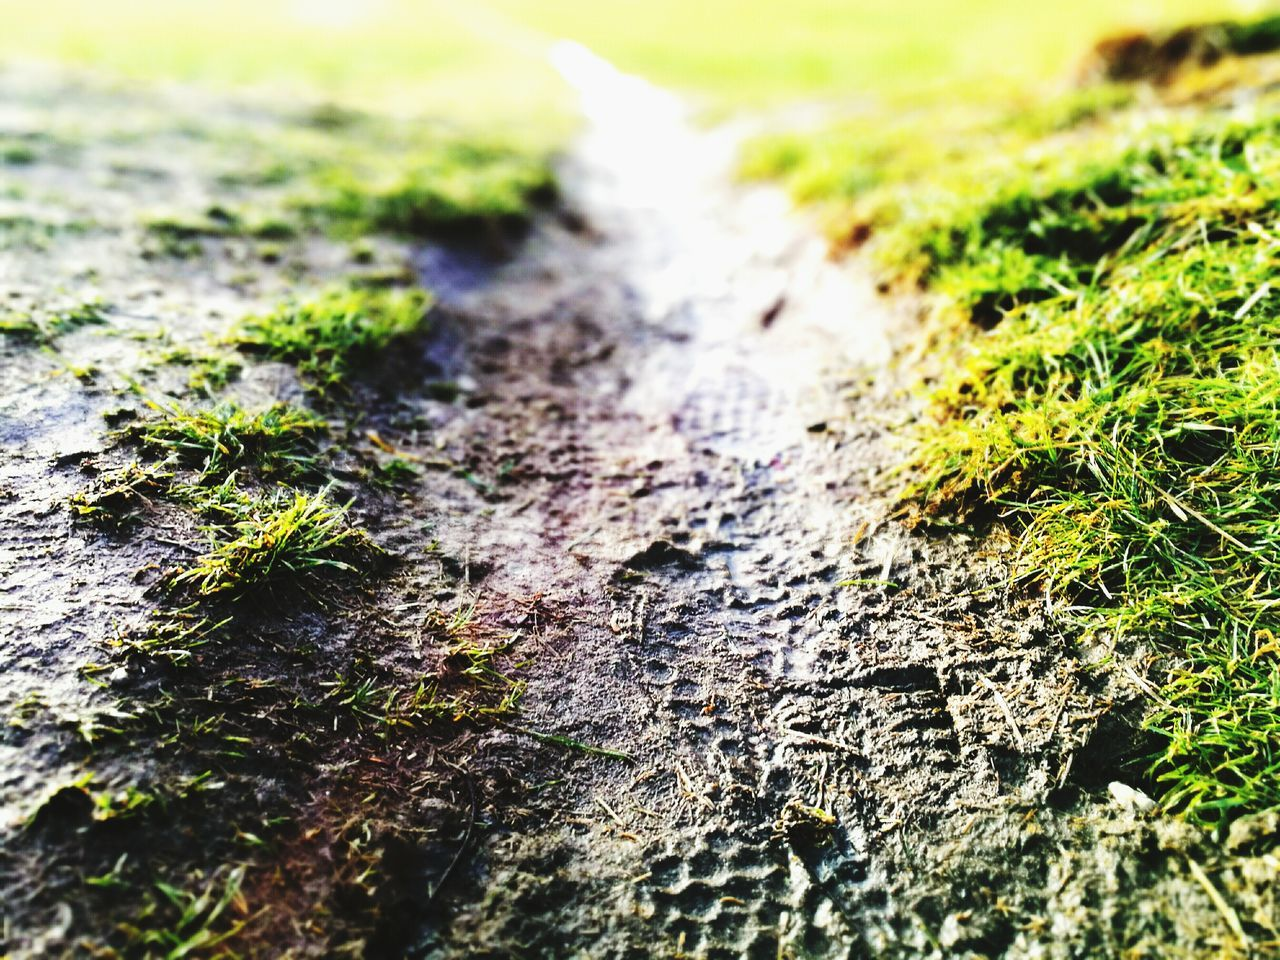 selective focus, textured, no people, moss, nature, close-up, day, outdoors, lichen, fungus